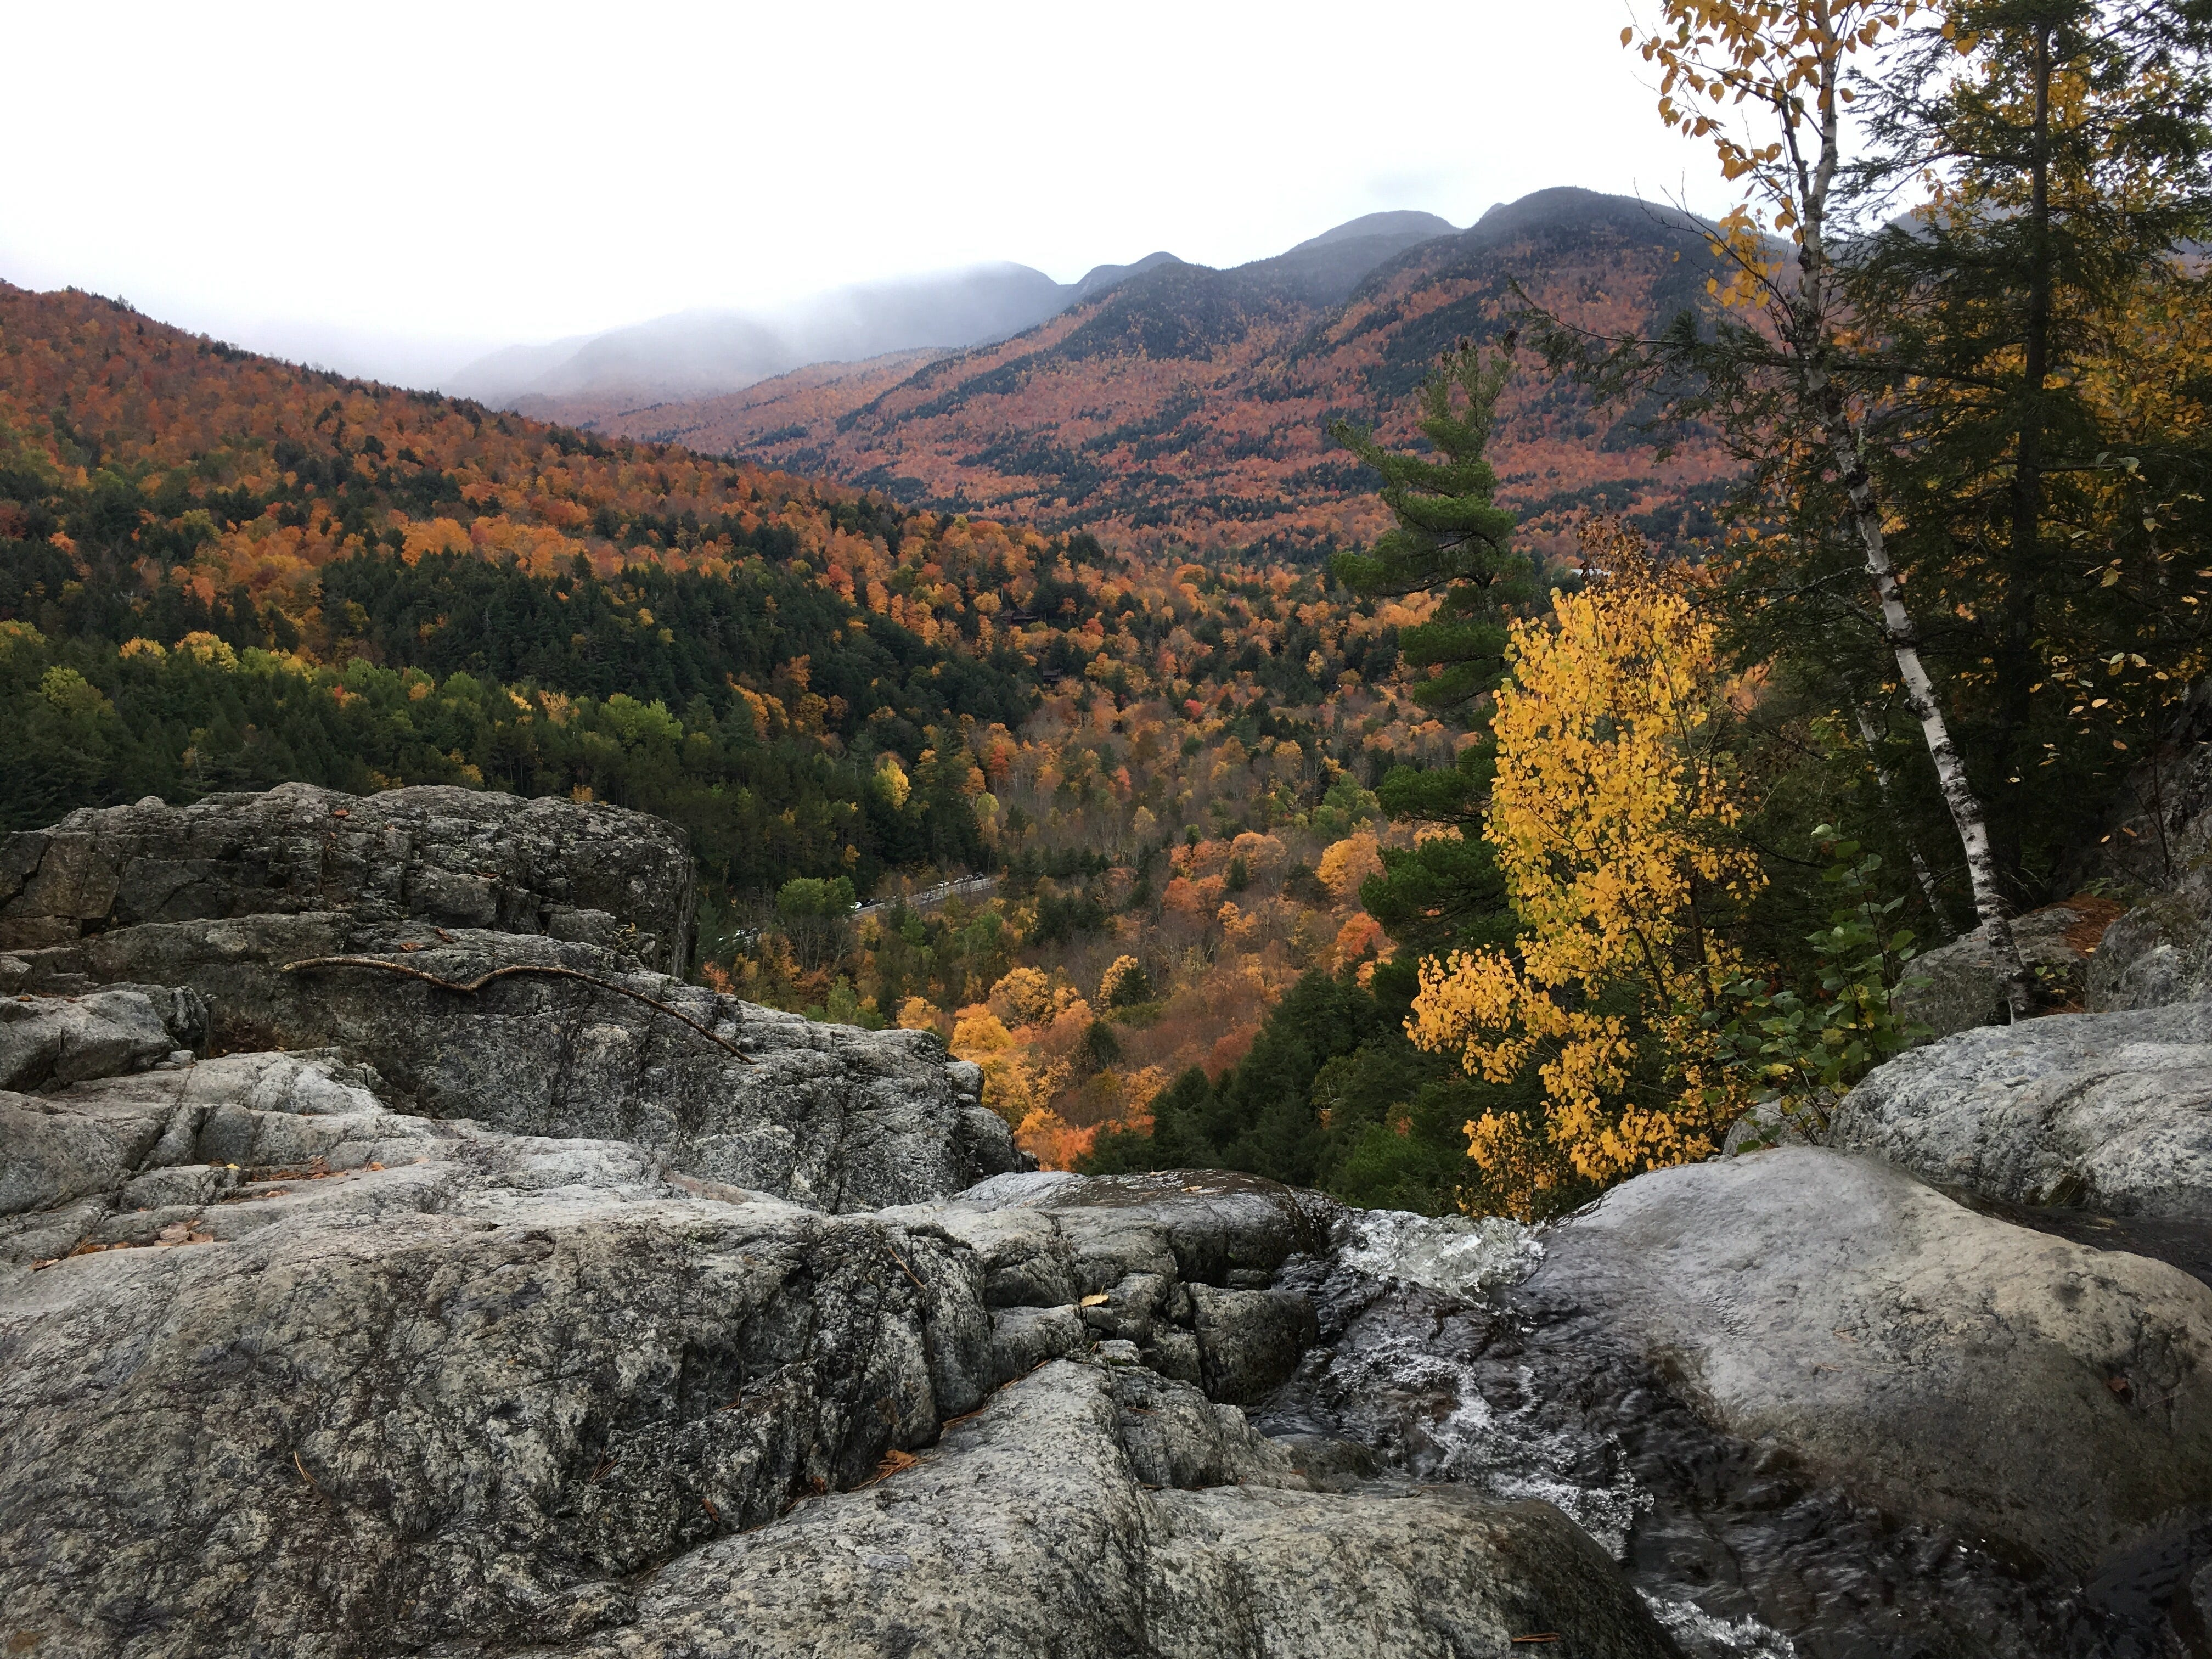 The view from the top of Roaring Brook Falls in New York's Adirondack Park on Oct. 13, 2018.